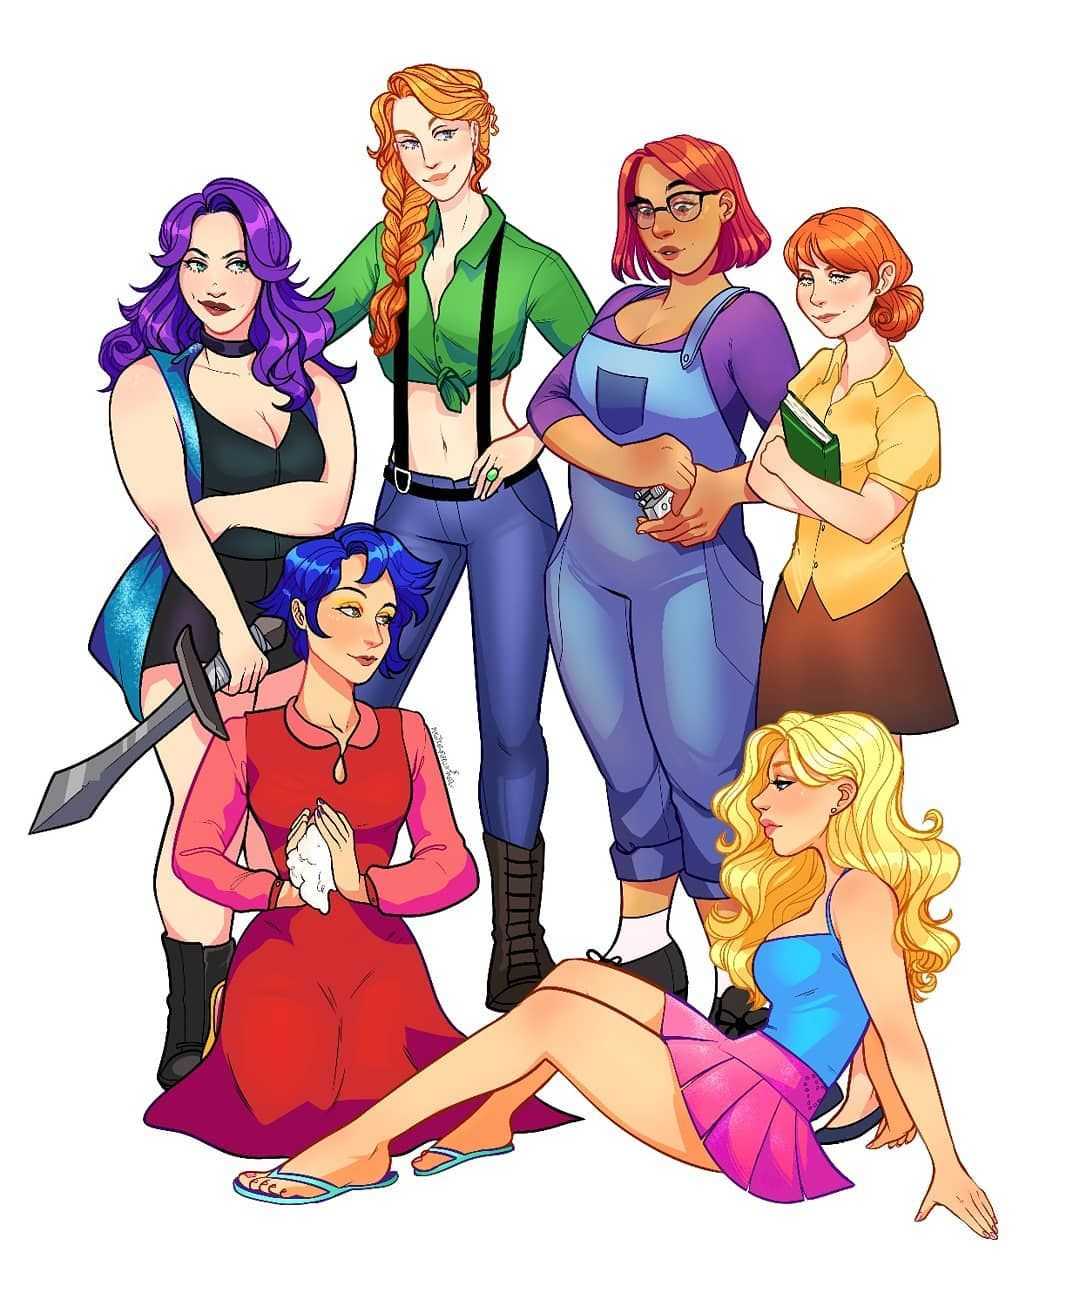 Stardew Valley art > The Bachelorettes of Pelican Town